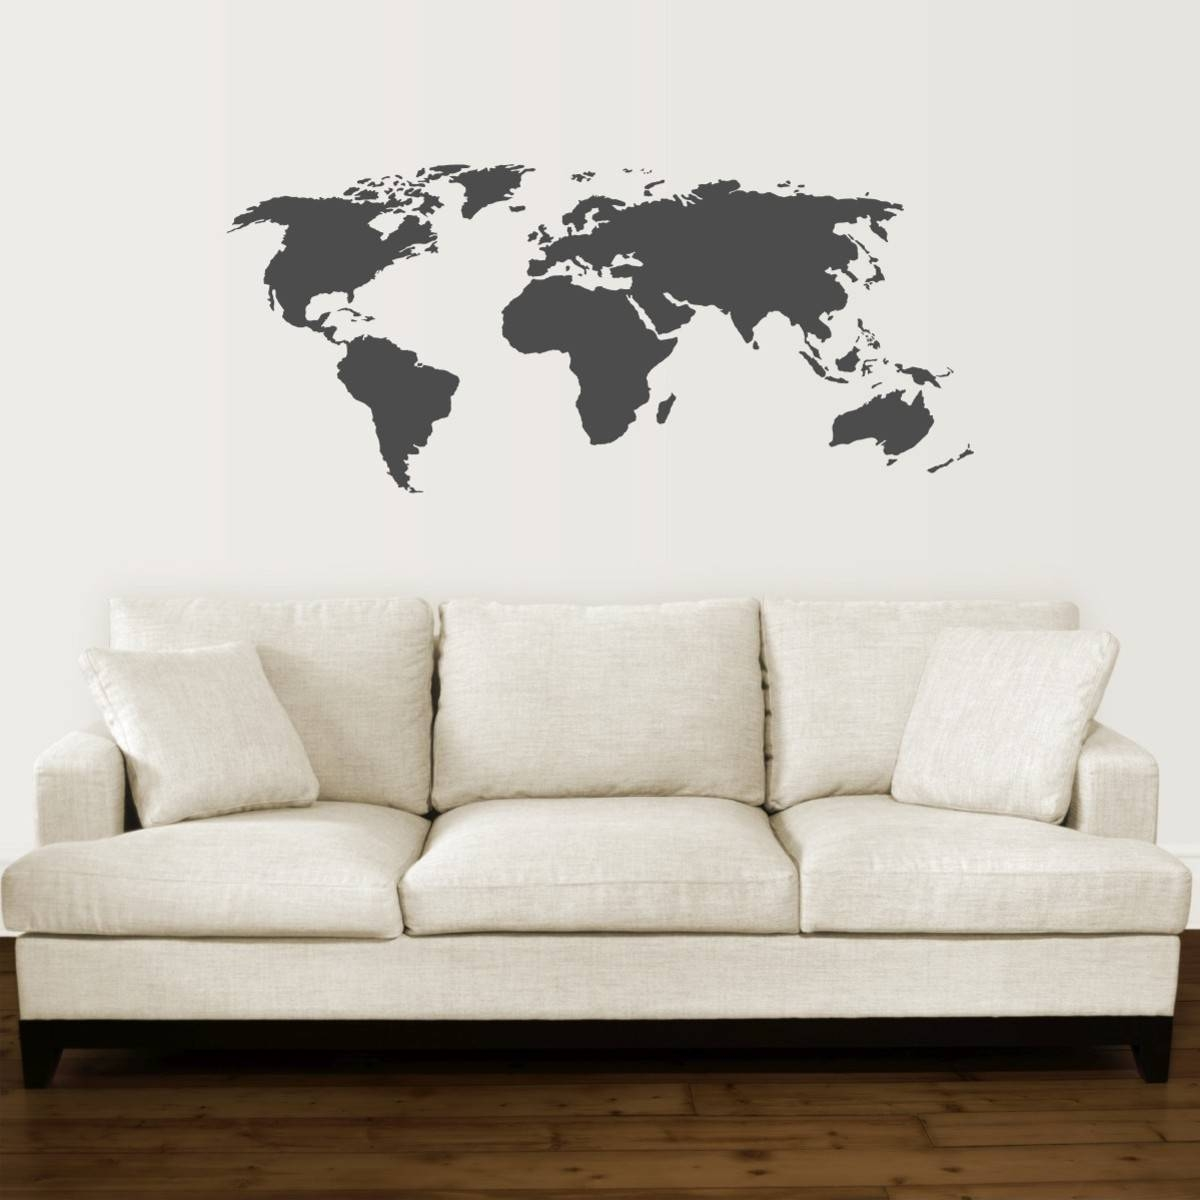 Wall Art Designs: Awesome Best Hanging World Maps Wall Art Decor For 2017 Framed World Map Wall Art (View 13 of 20)